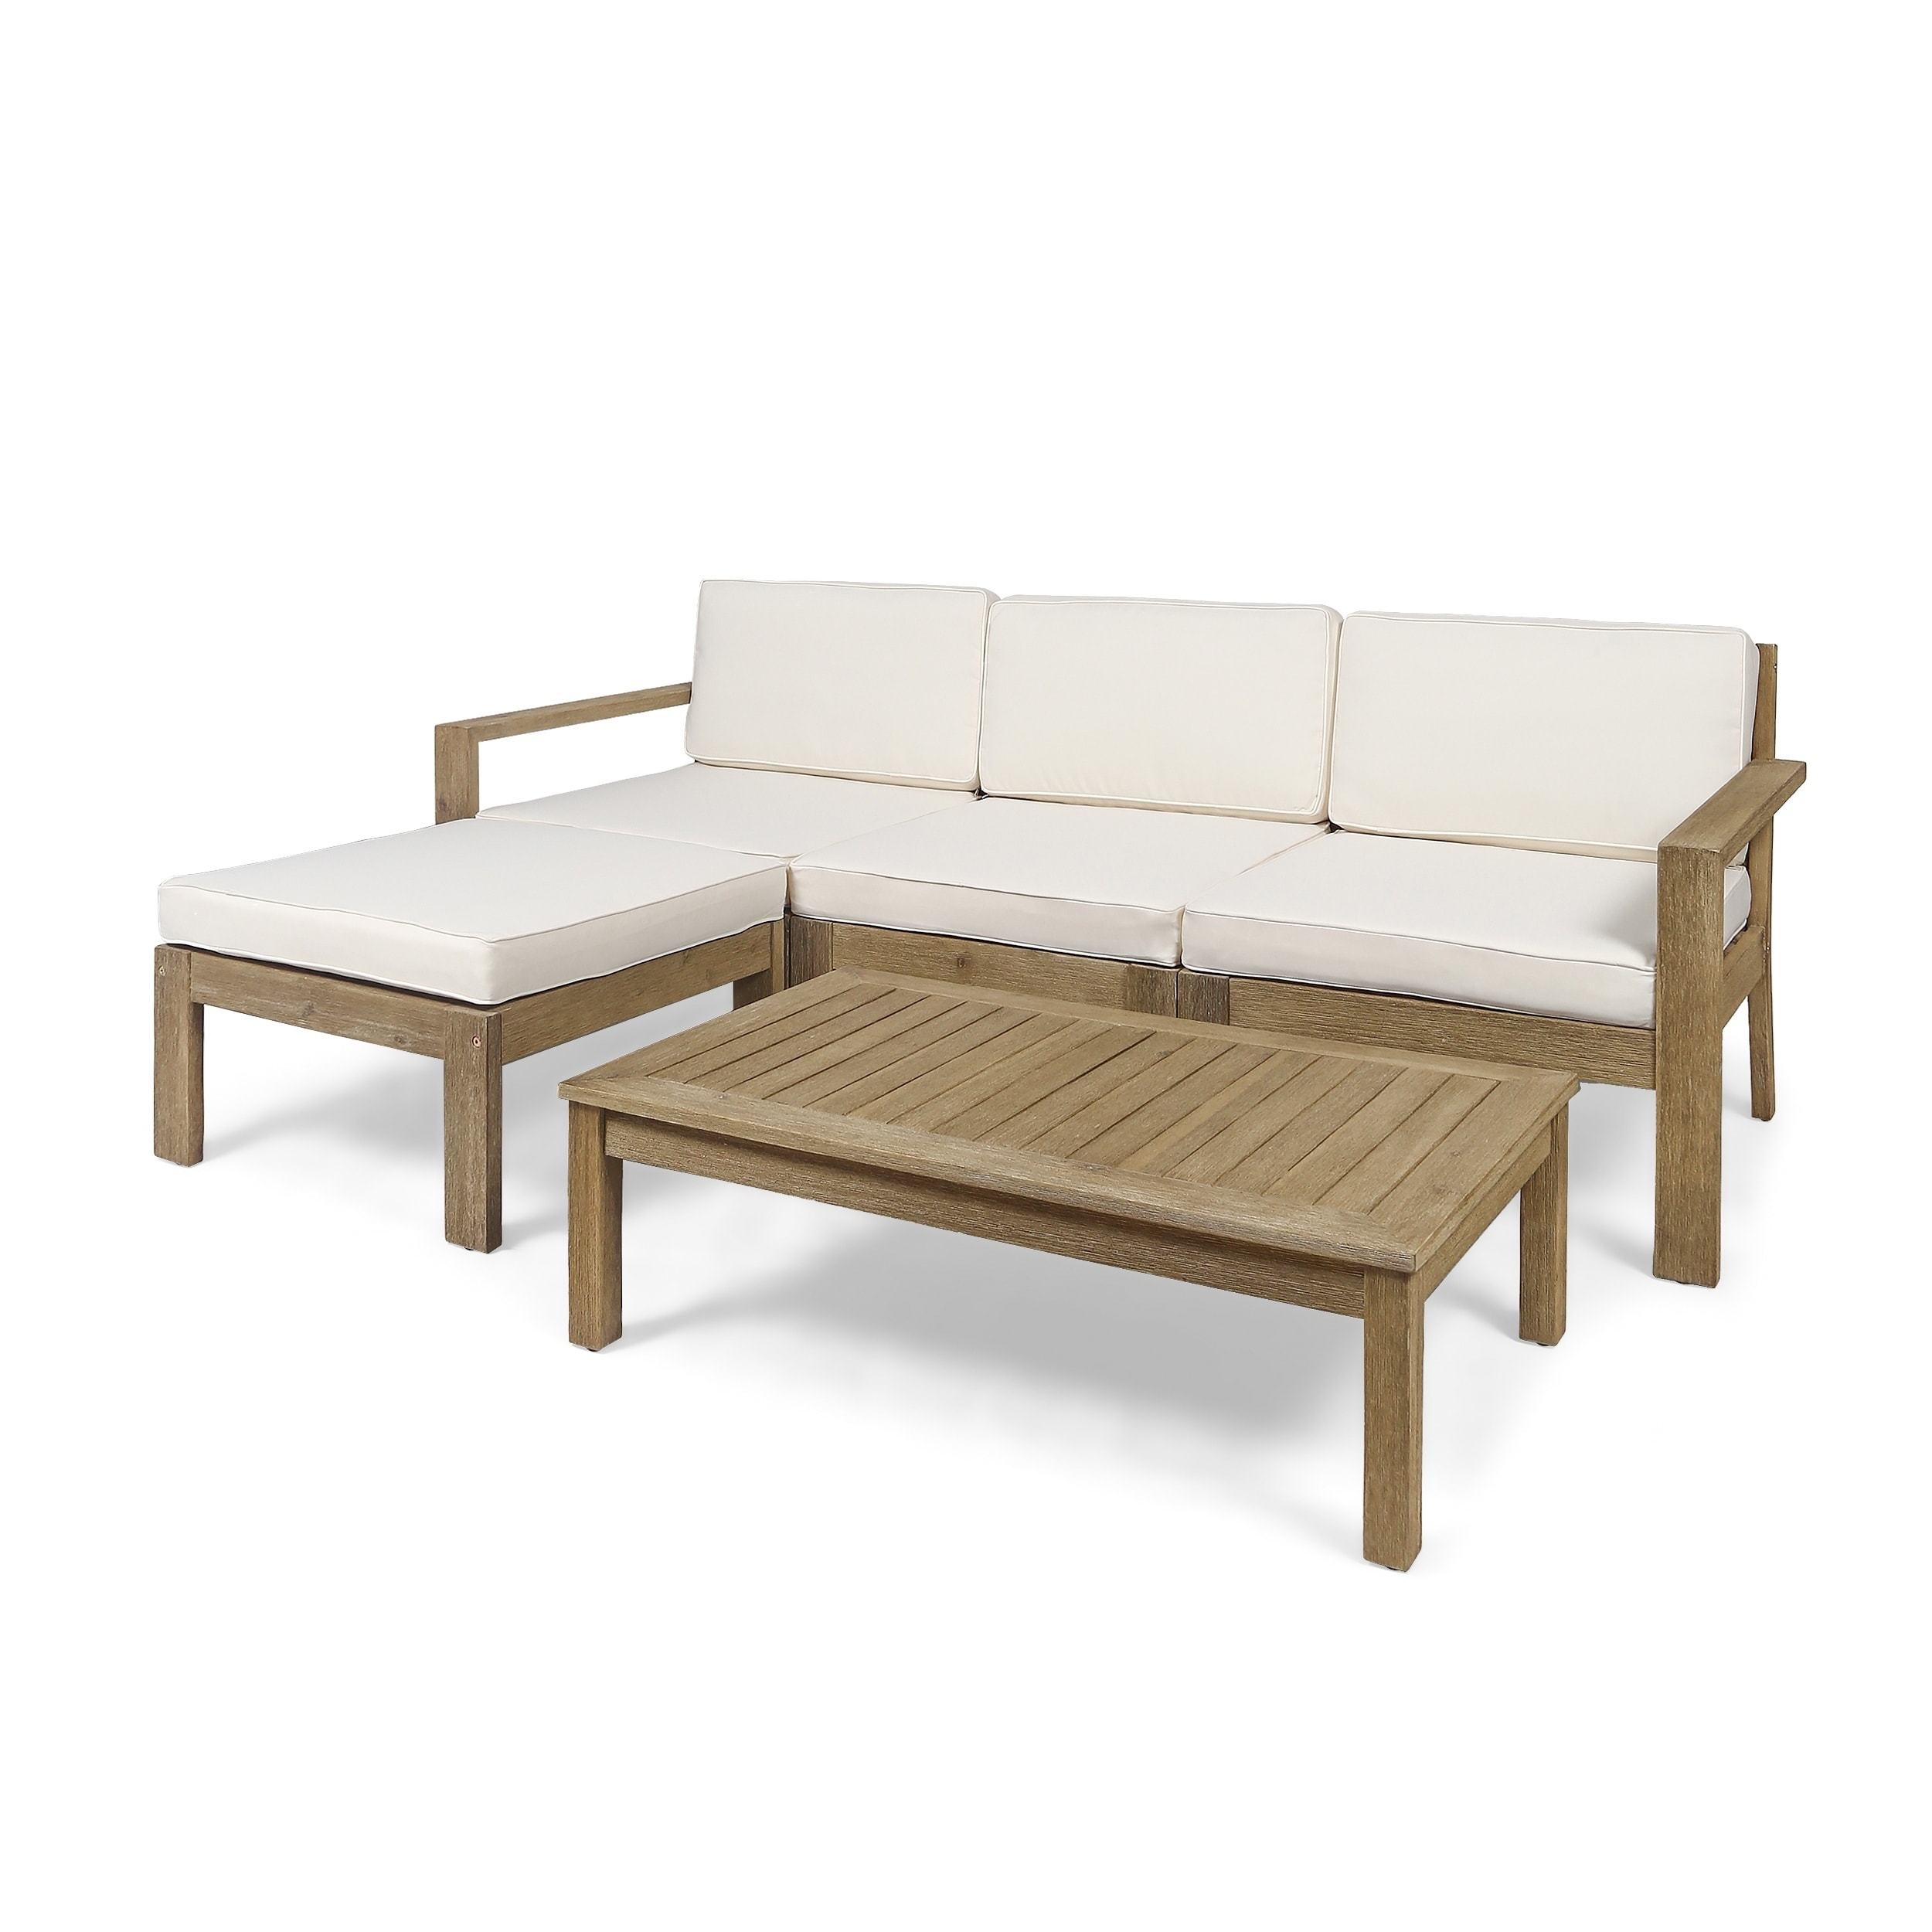 Surprising Santa Ana Outdoor 3 Seater Acacia Wood Sofa Sectional With Cushions By Christopher Knight Home Gmtry Best Dining Table And Chair Ideas Images Gmtryco